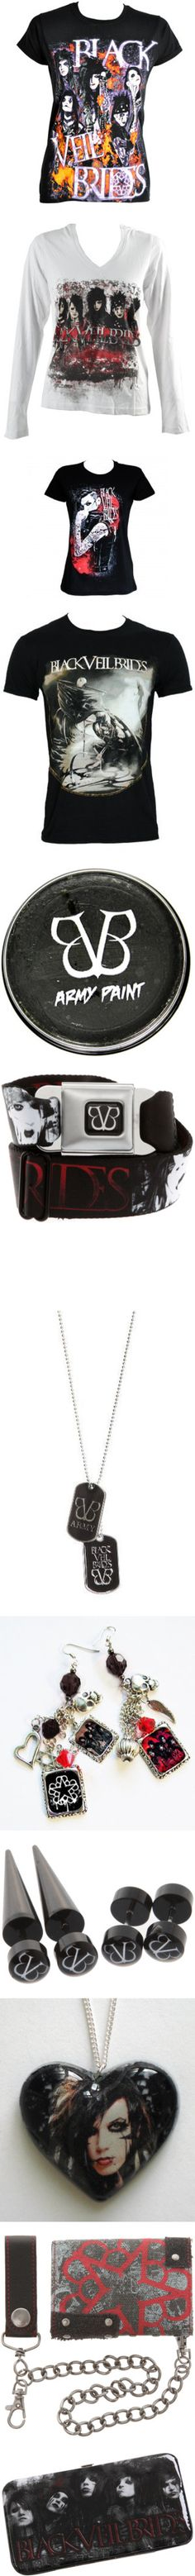 """Black Veil Brides Merch"" by onedirectionlover99-872 ❤ liked on Polyvore"